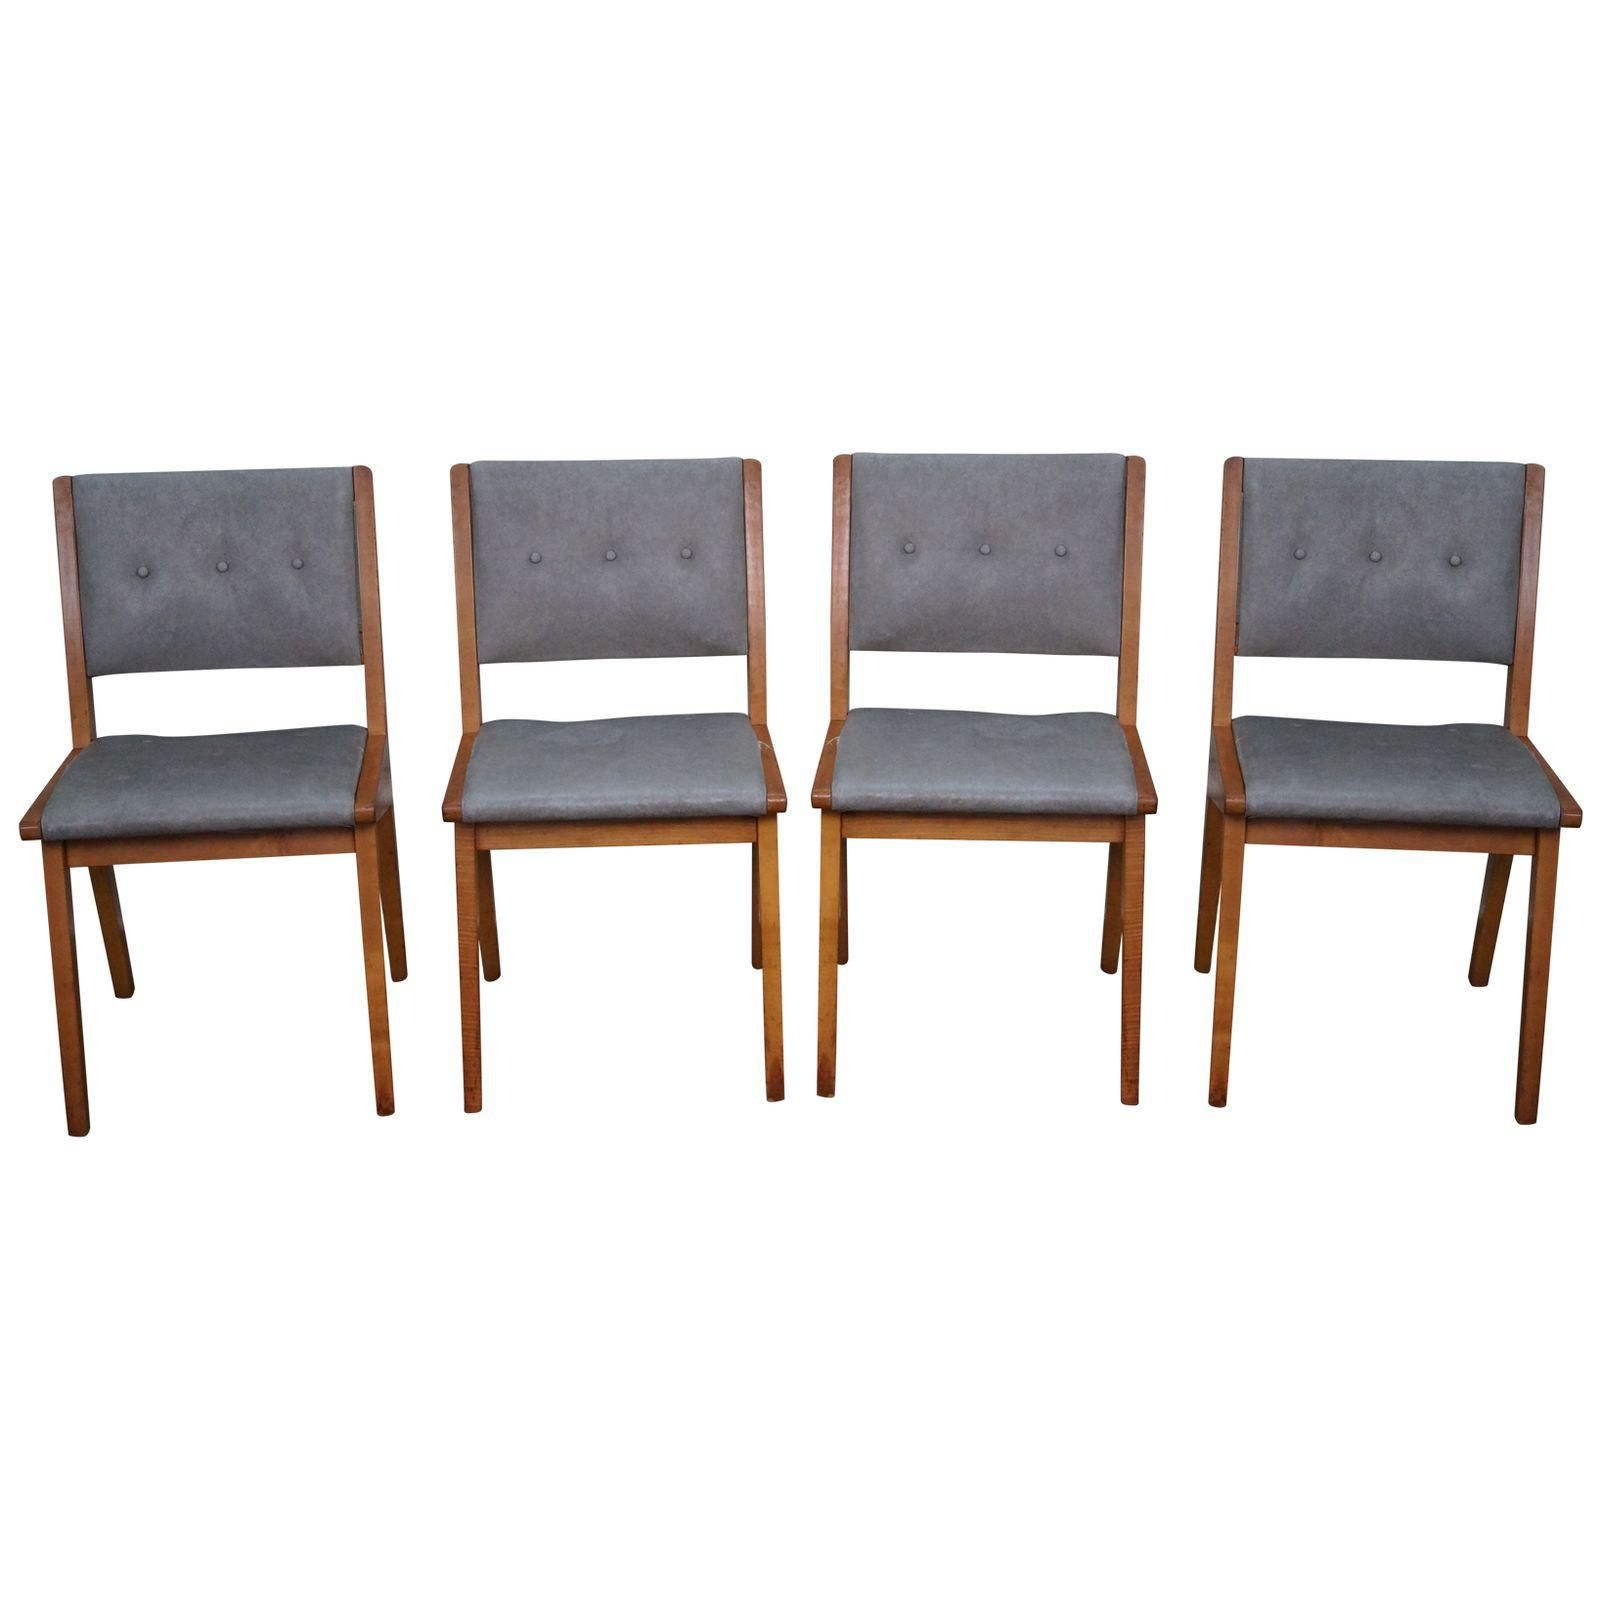 Jens Risom Midcentury Dining Chairs  Set Of 4  Dining Chair Set Cool Dining Room Chair Set Of 4 Review